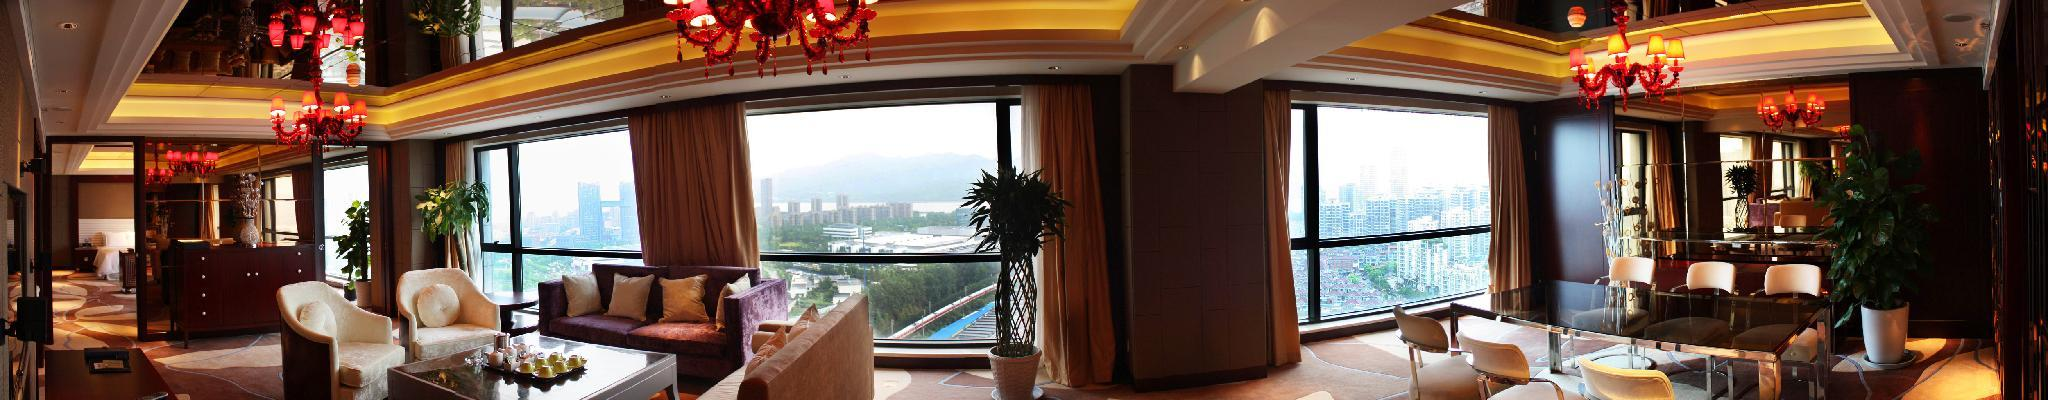 Diplomatic Suite, 2 Bedroom Presidential Suite, City view